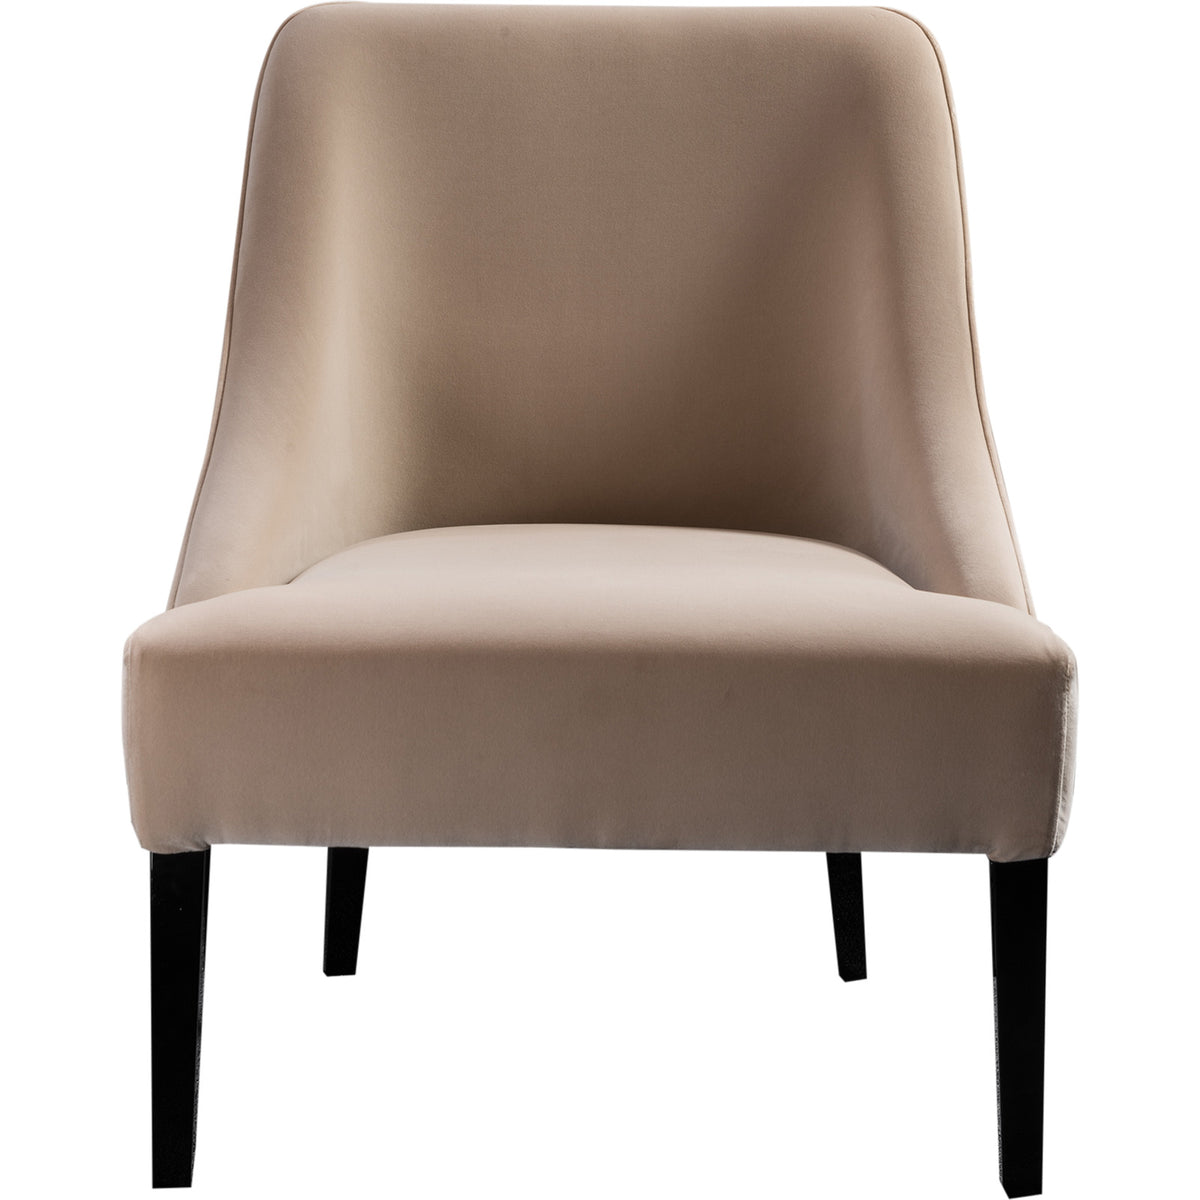 Vicky Small Armchair